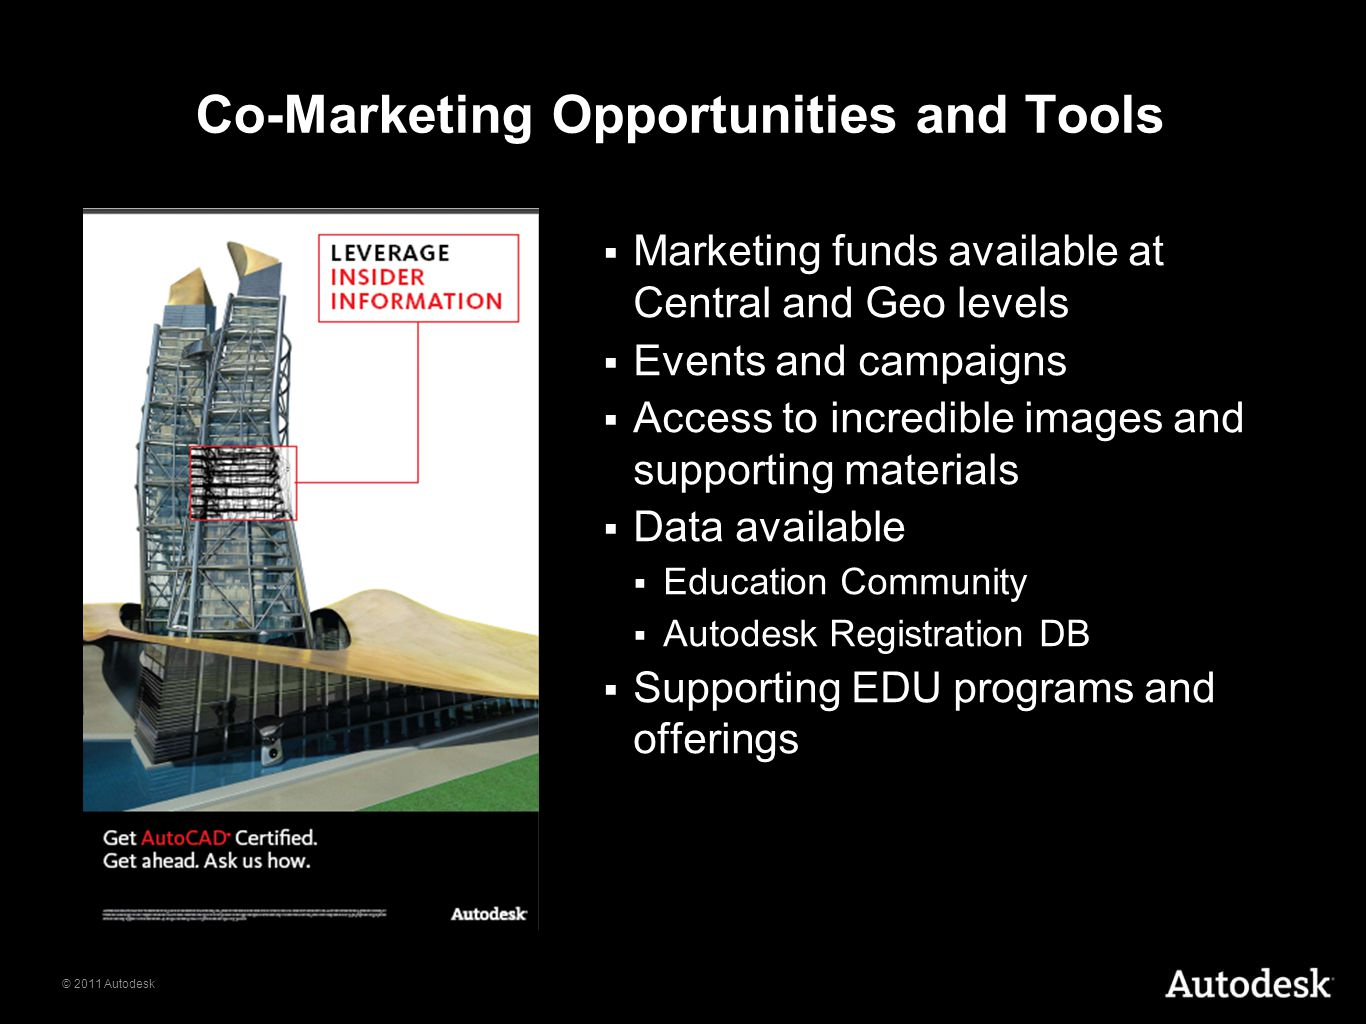 © 2011 Autodesk Co-Marketing Opportunities and Tools  Marketing funds available at Central and Geo levels  Events and campaigns  Access to incredible images and supporting materials  Data available  Education Community  Autodesk Registration DB  Supporting EDU programs and offerings